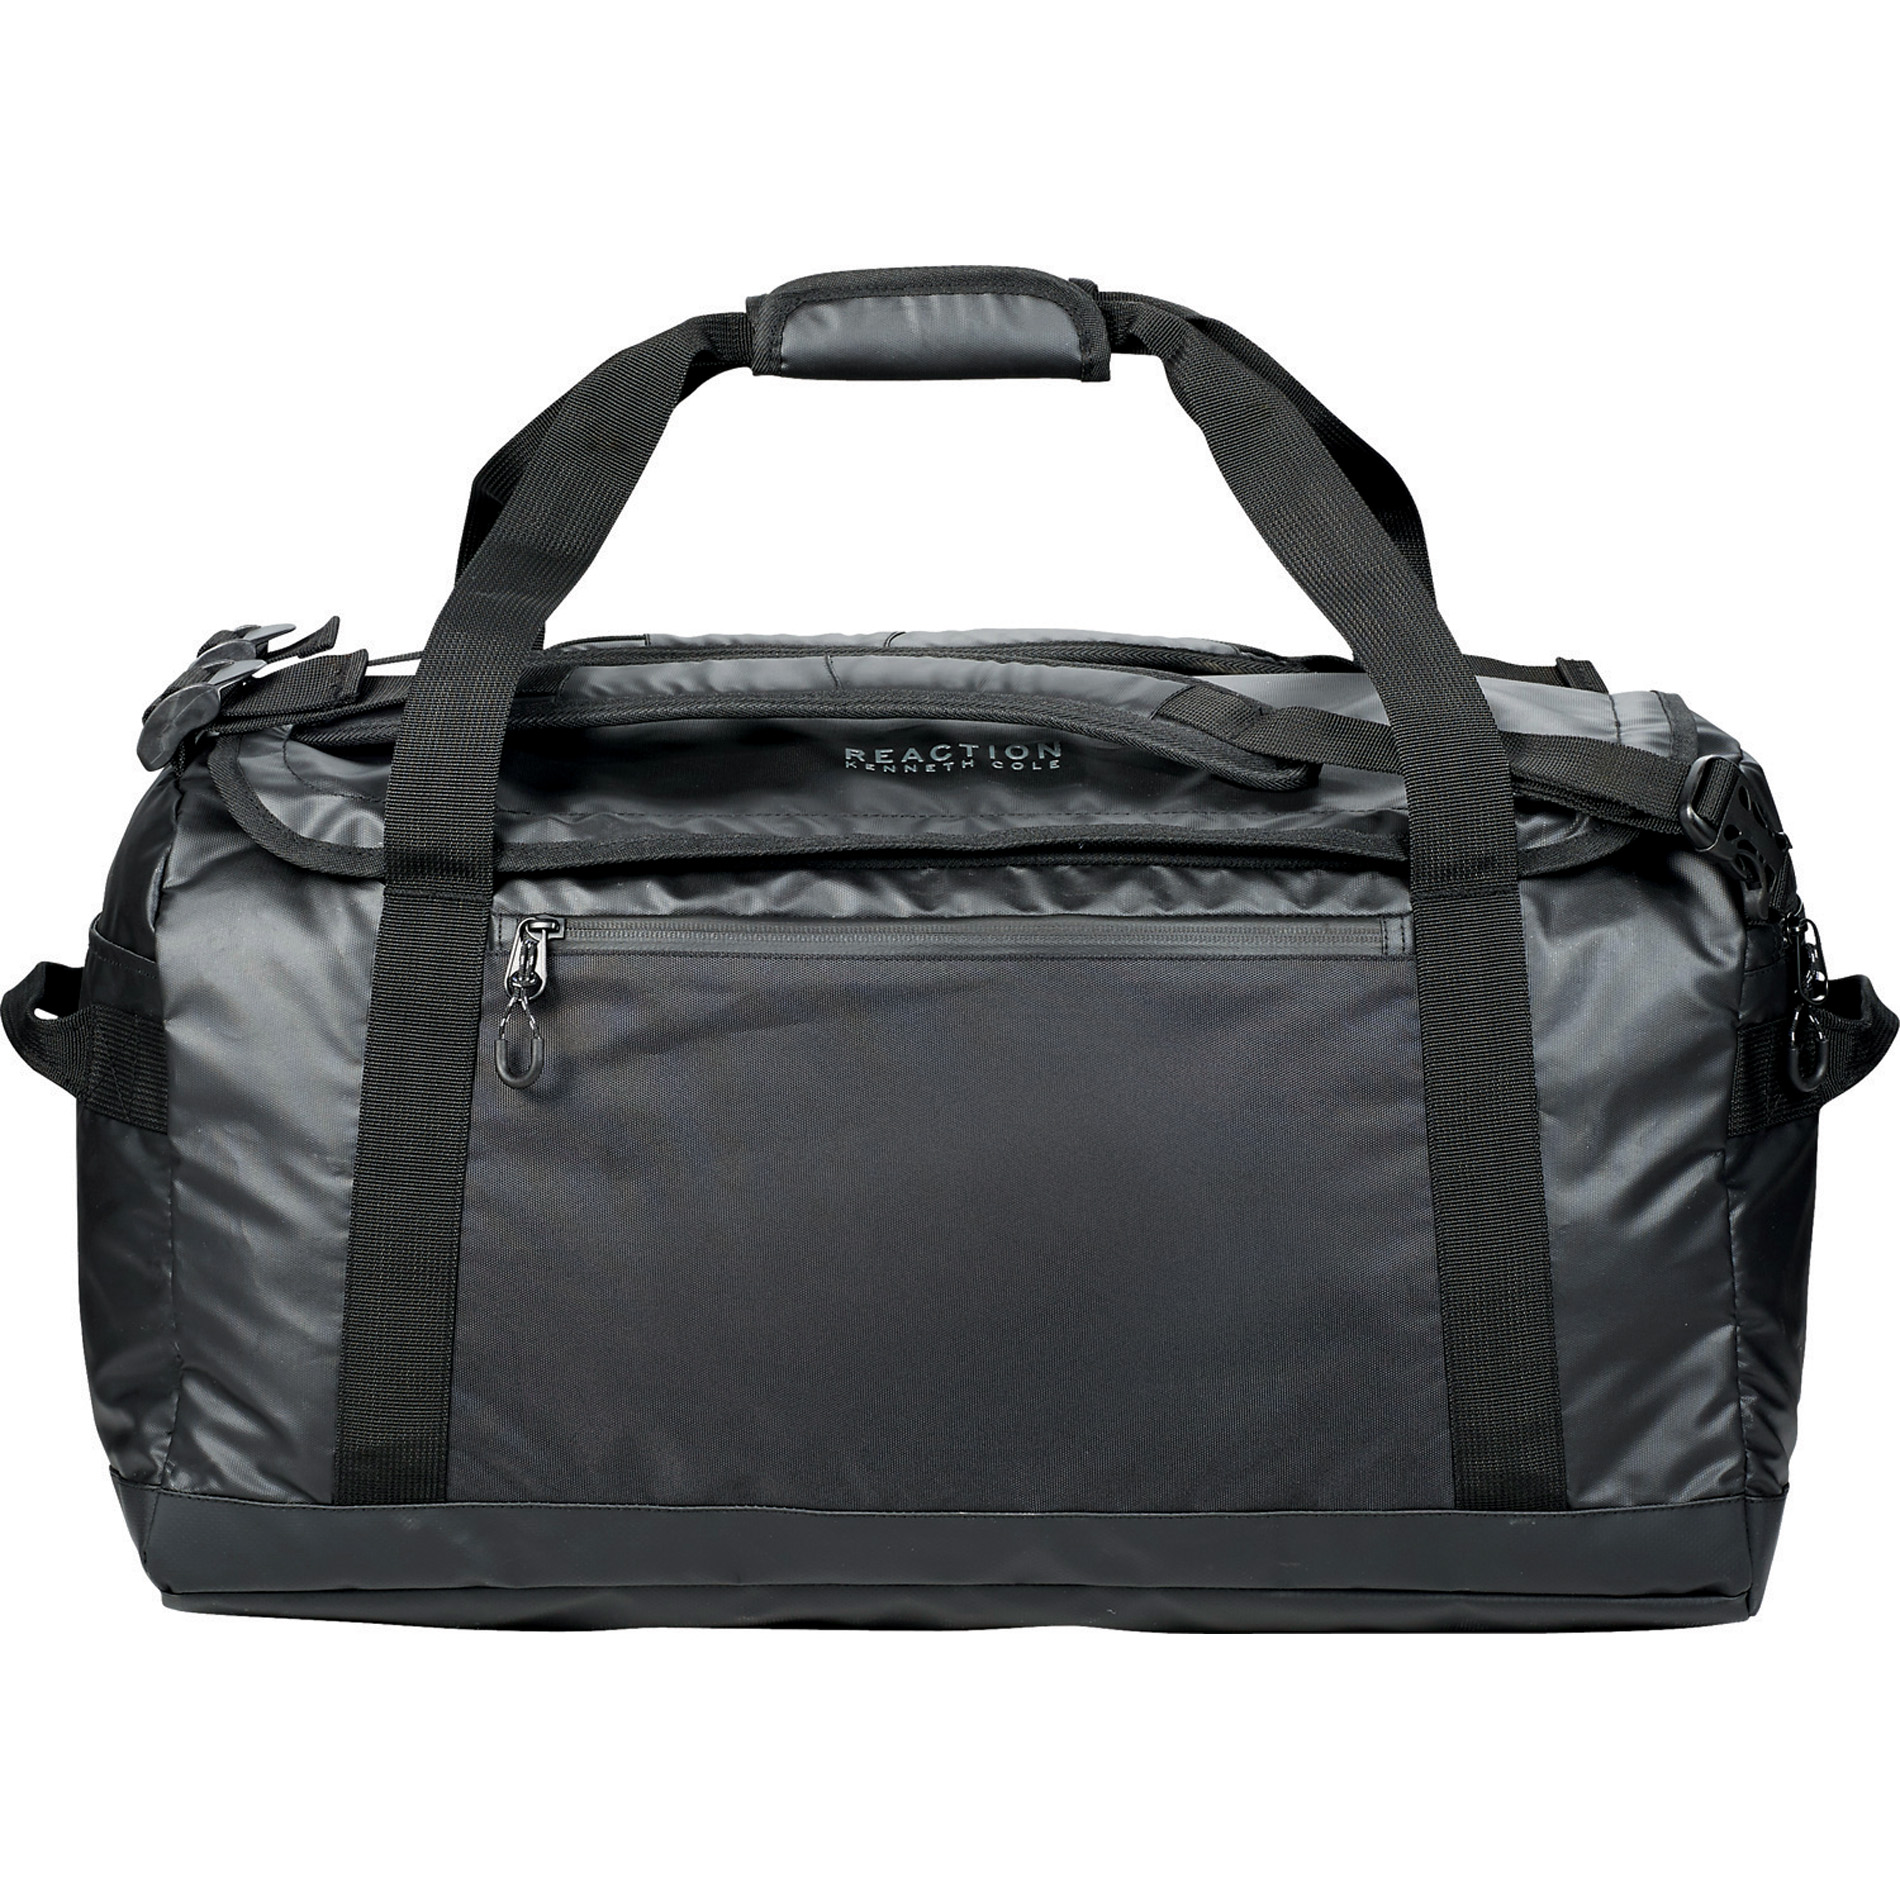 Kenneth Cole 9950-76 - 22 Duffel with Backpack Straps